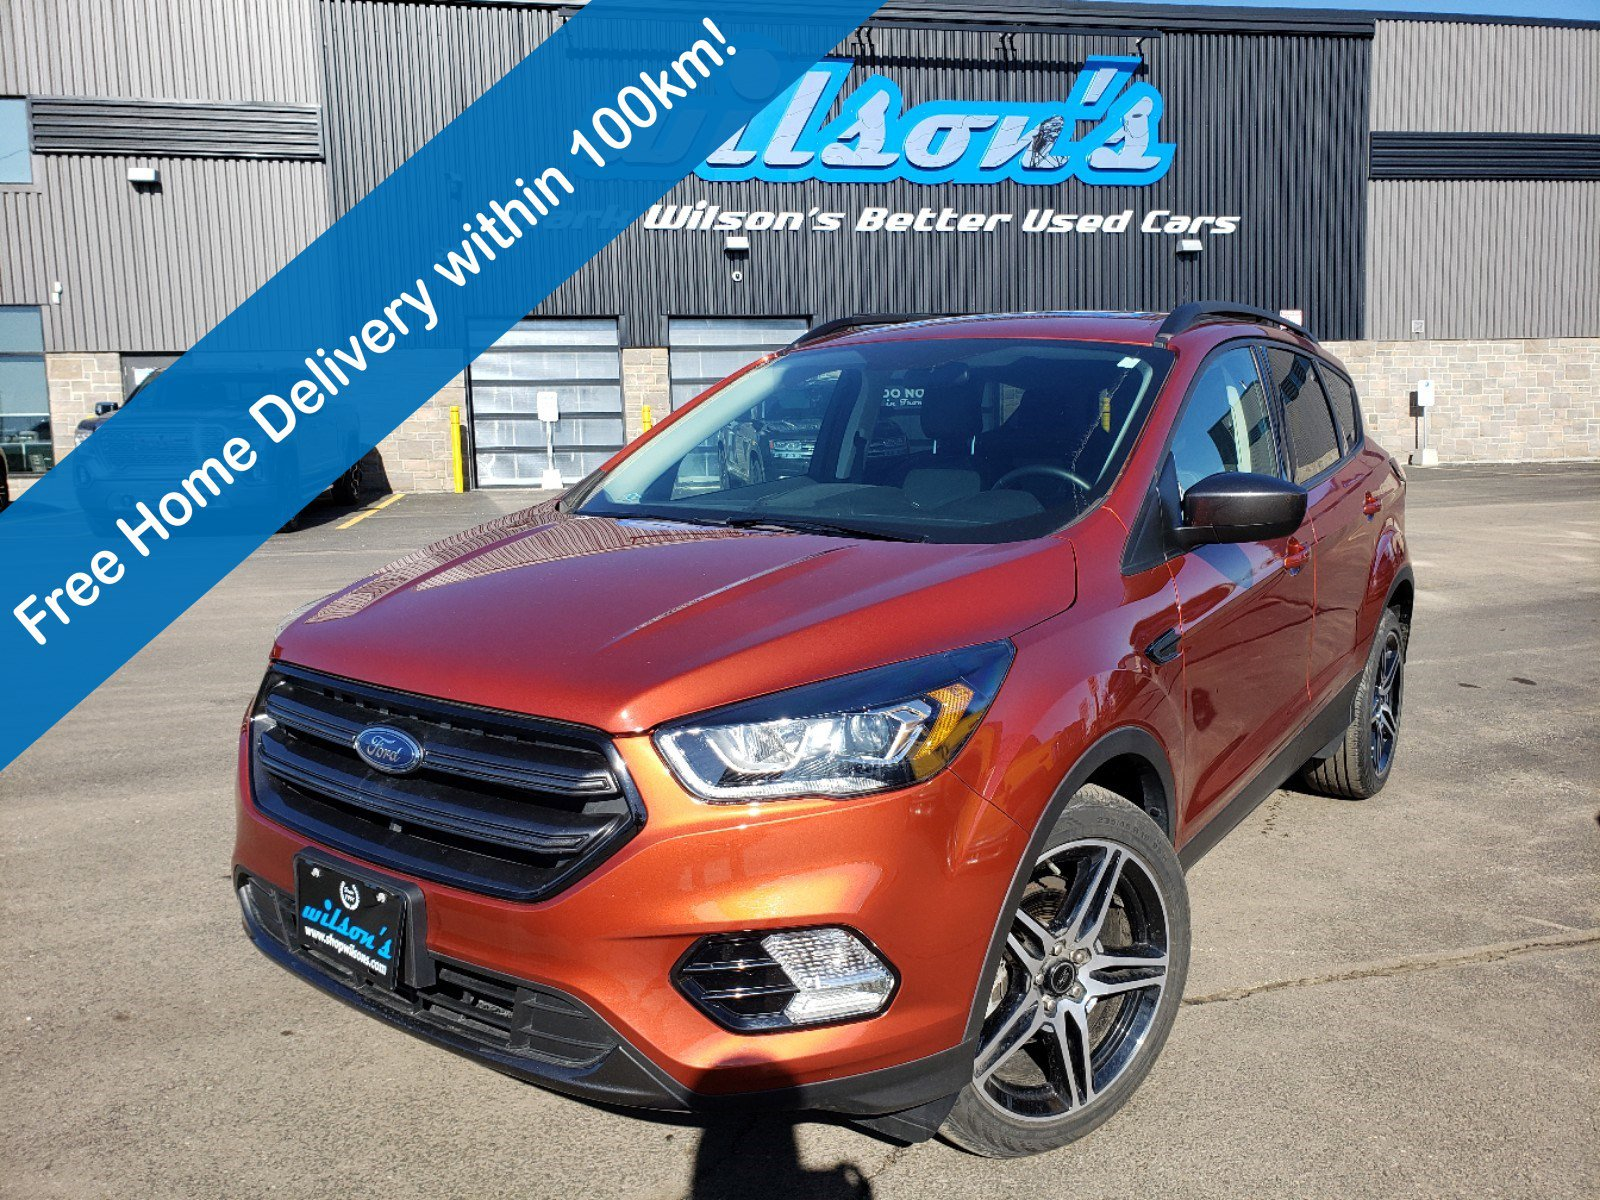 Certified Pre-Owned 2019 Ford Escape SEL Leather, Power Seats, Heated Seats, Parking Sensors, Reverse Camera, and much more!